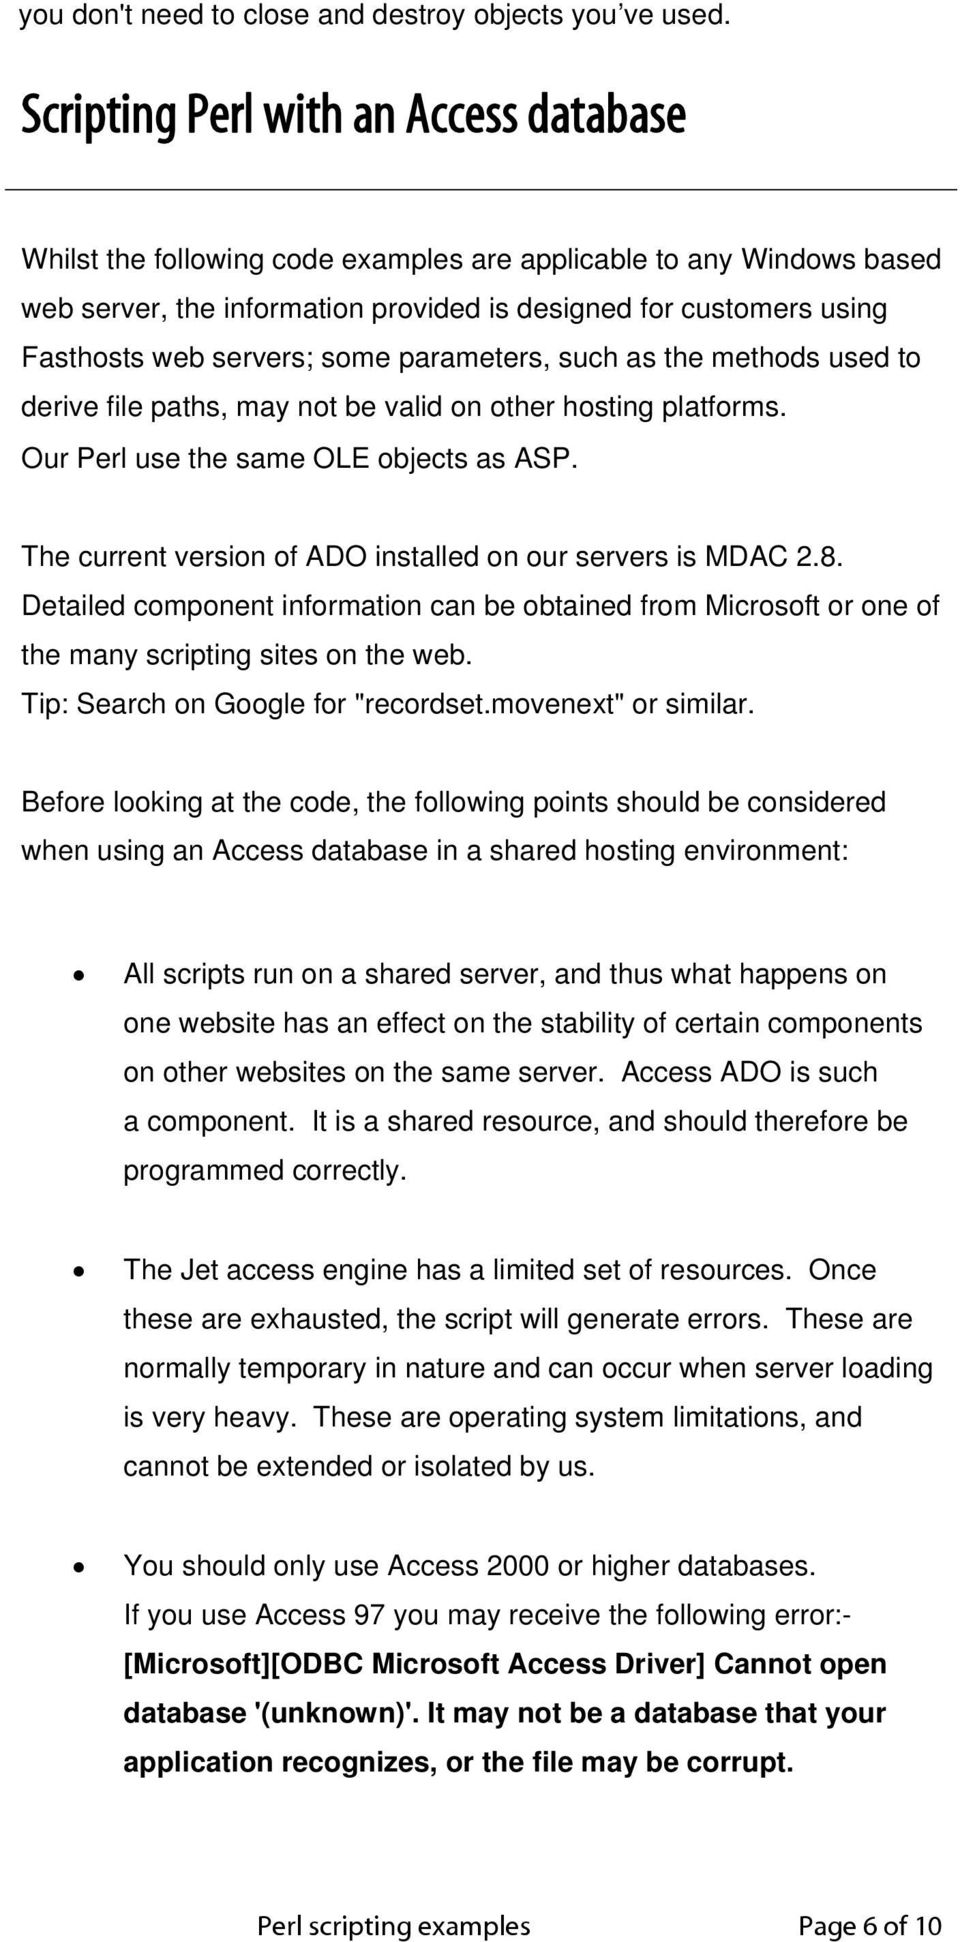 Contents  Perl scripting examples Page 1 of 10 - PDF